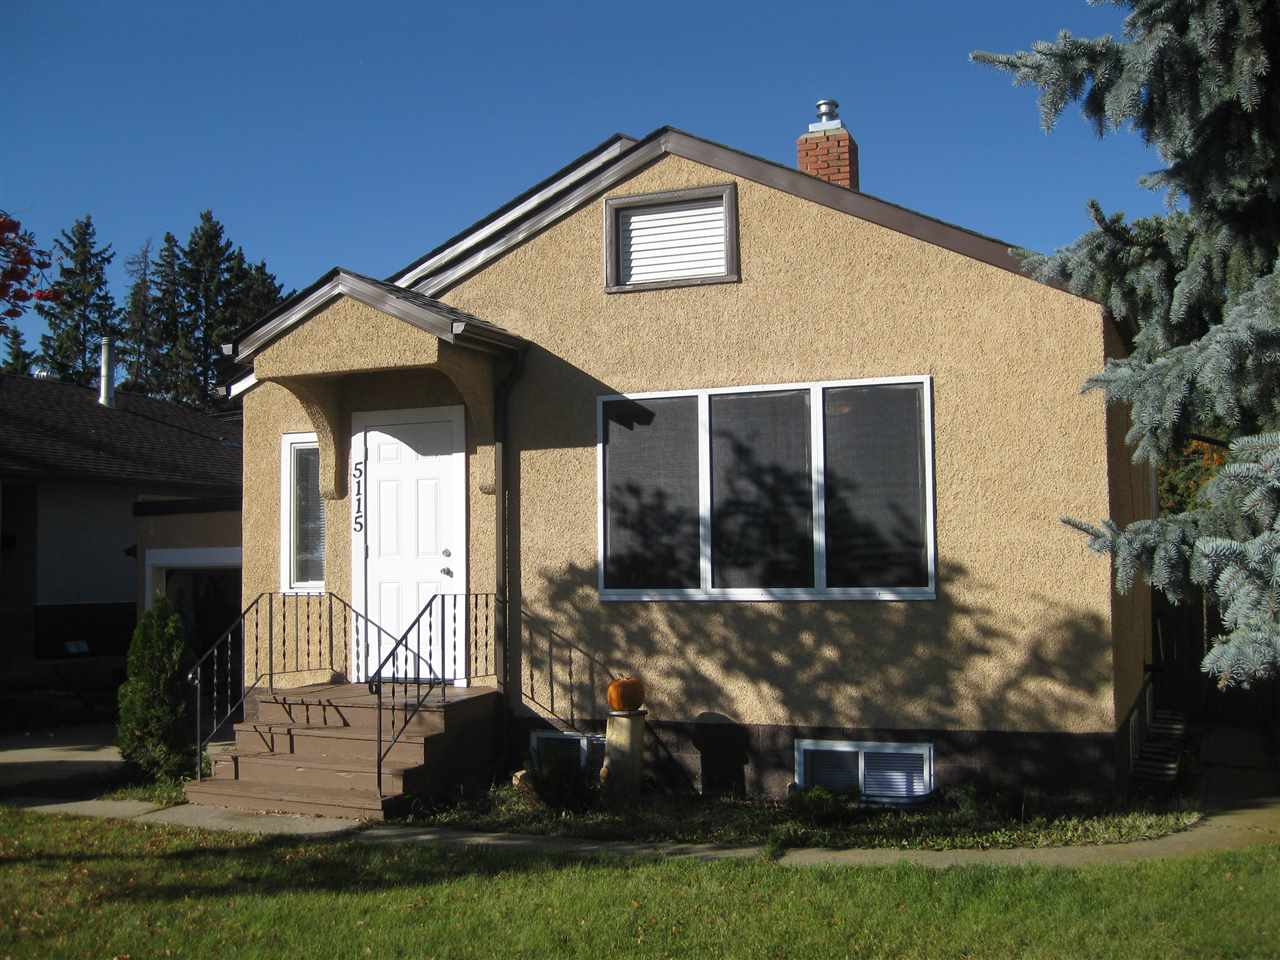 ATTENTION first home buyers! Check this 3 bedroom 2 bathroom home with attached garage located in a beautiful neighbourhood in Stony Plain. This property was lovingly maintained and substantially ungraded over the last years. It is super clean and MOVE-IN ready, with fresh paint, updated hardwood and laminate floors, new interior doors, light fixtures, spacious bedroom and 3 piece bathroom in the basement. Large backyard has a new deck and a new fence all around. This lovely home is located across the street from the huge park. Community Arena and swimming pool is in a short walking distance. Schools, shopping and fine dining are all close by. IMMEDIATE POSSESSION available!